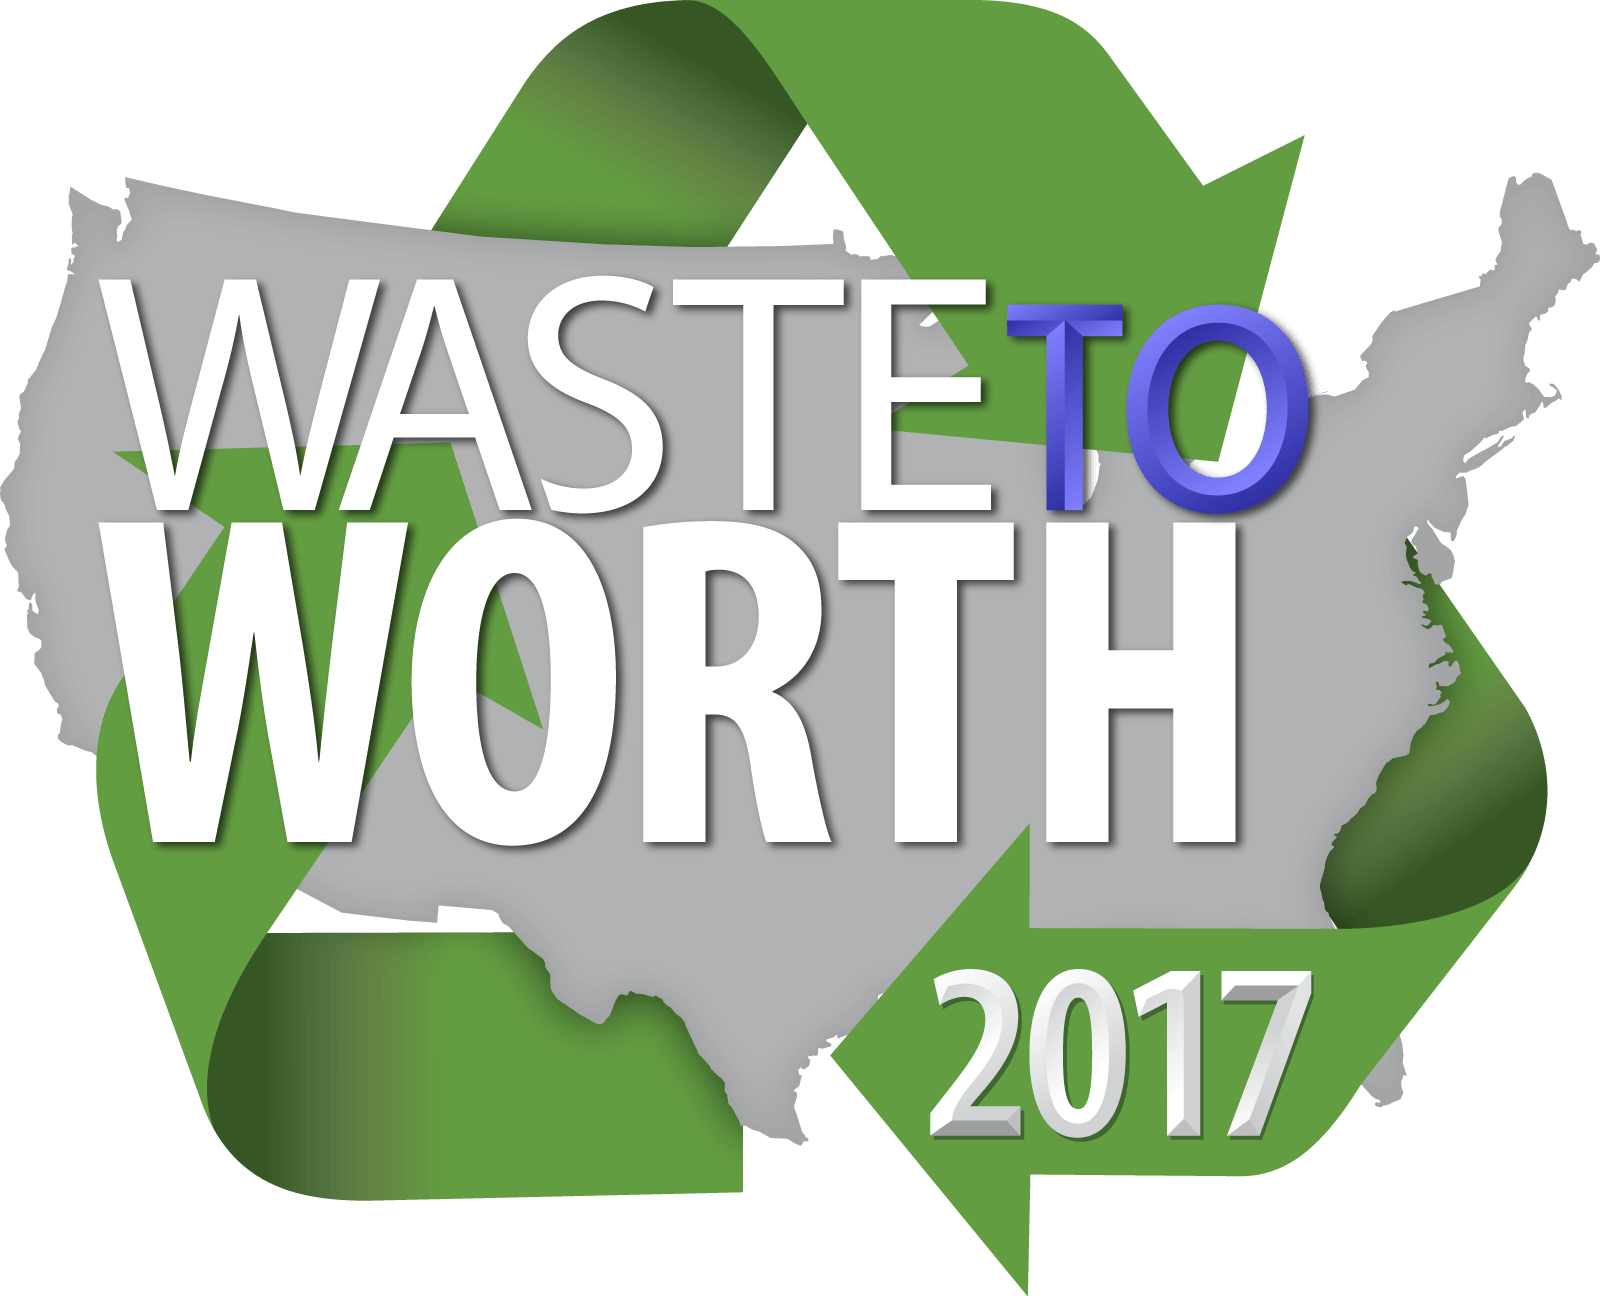 waste to worth 2017 logo